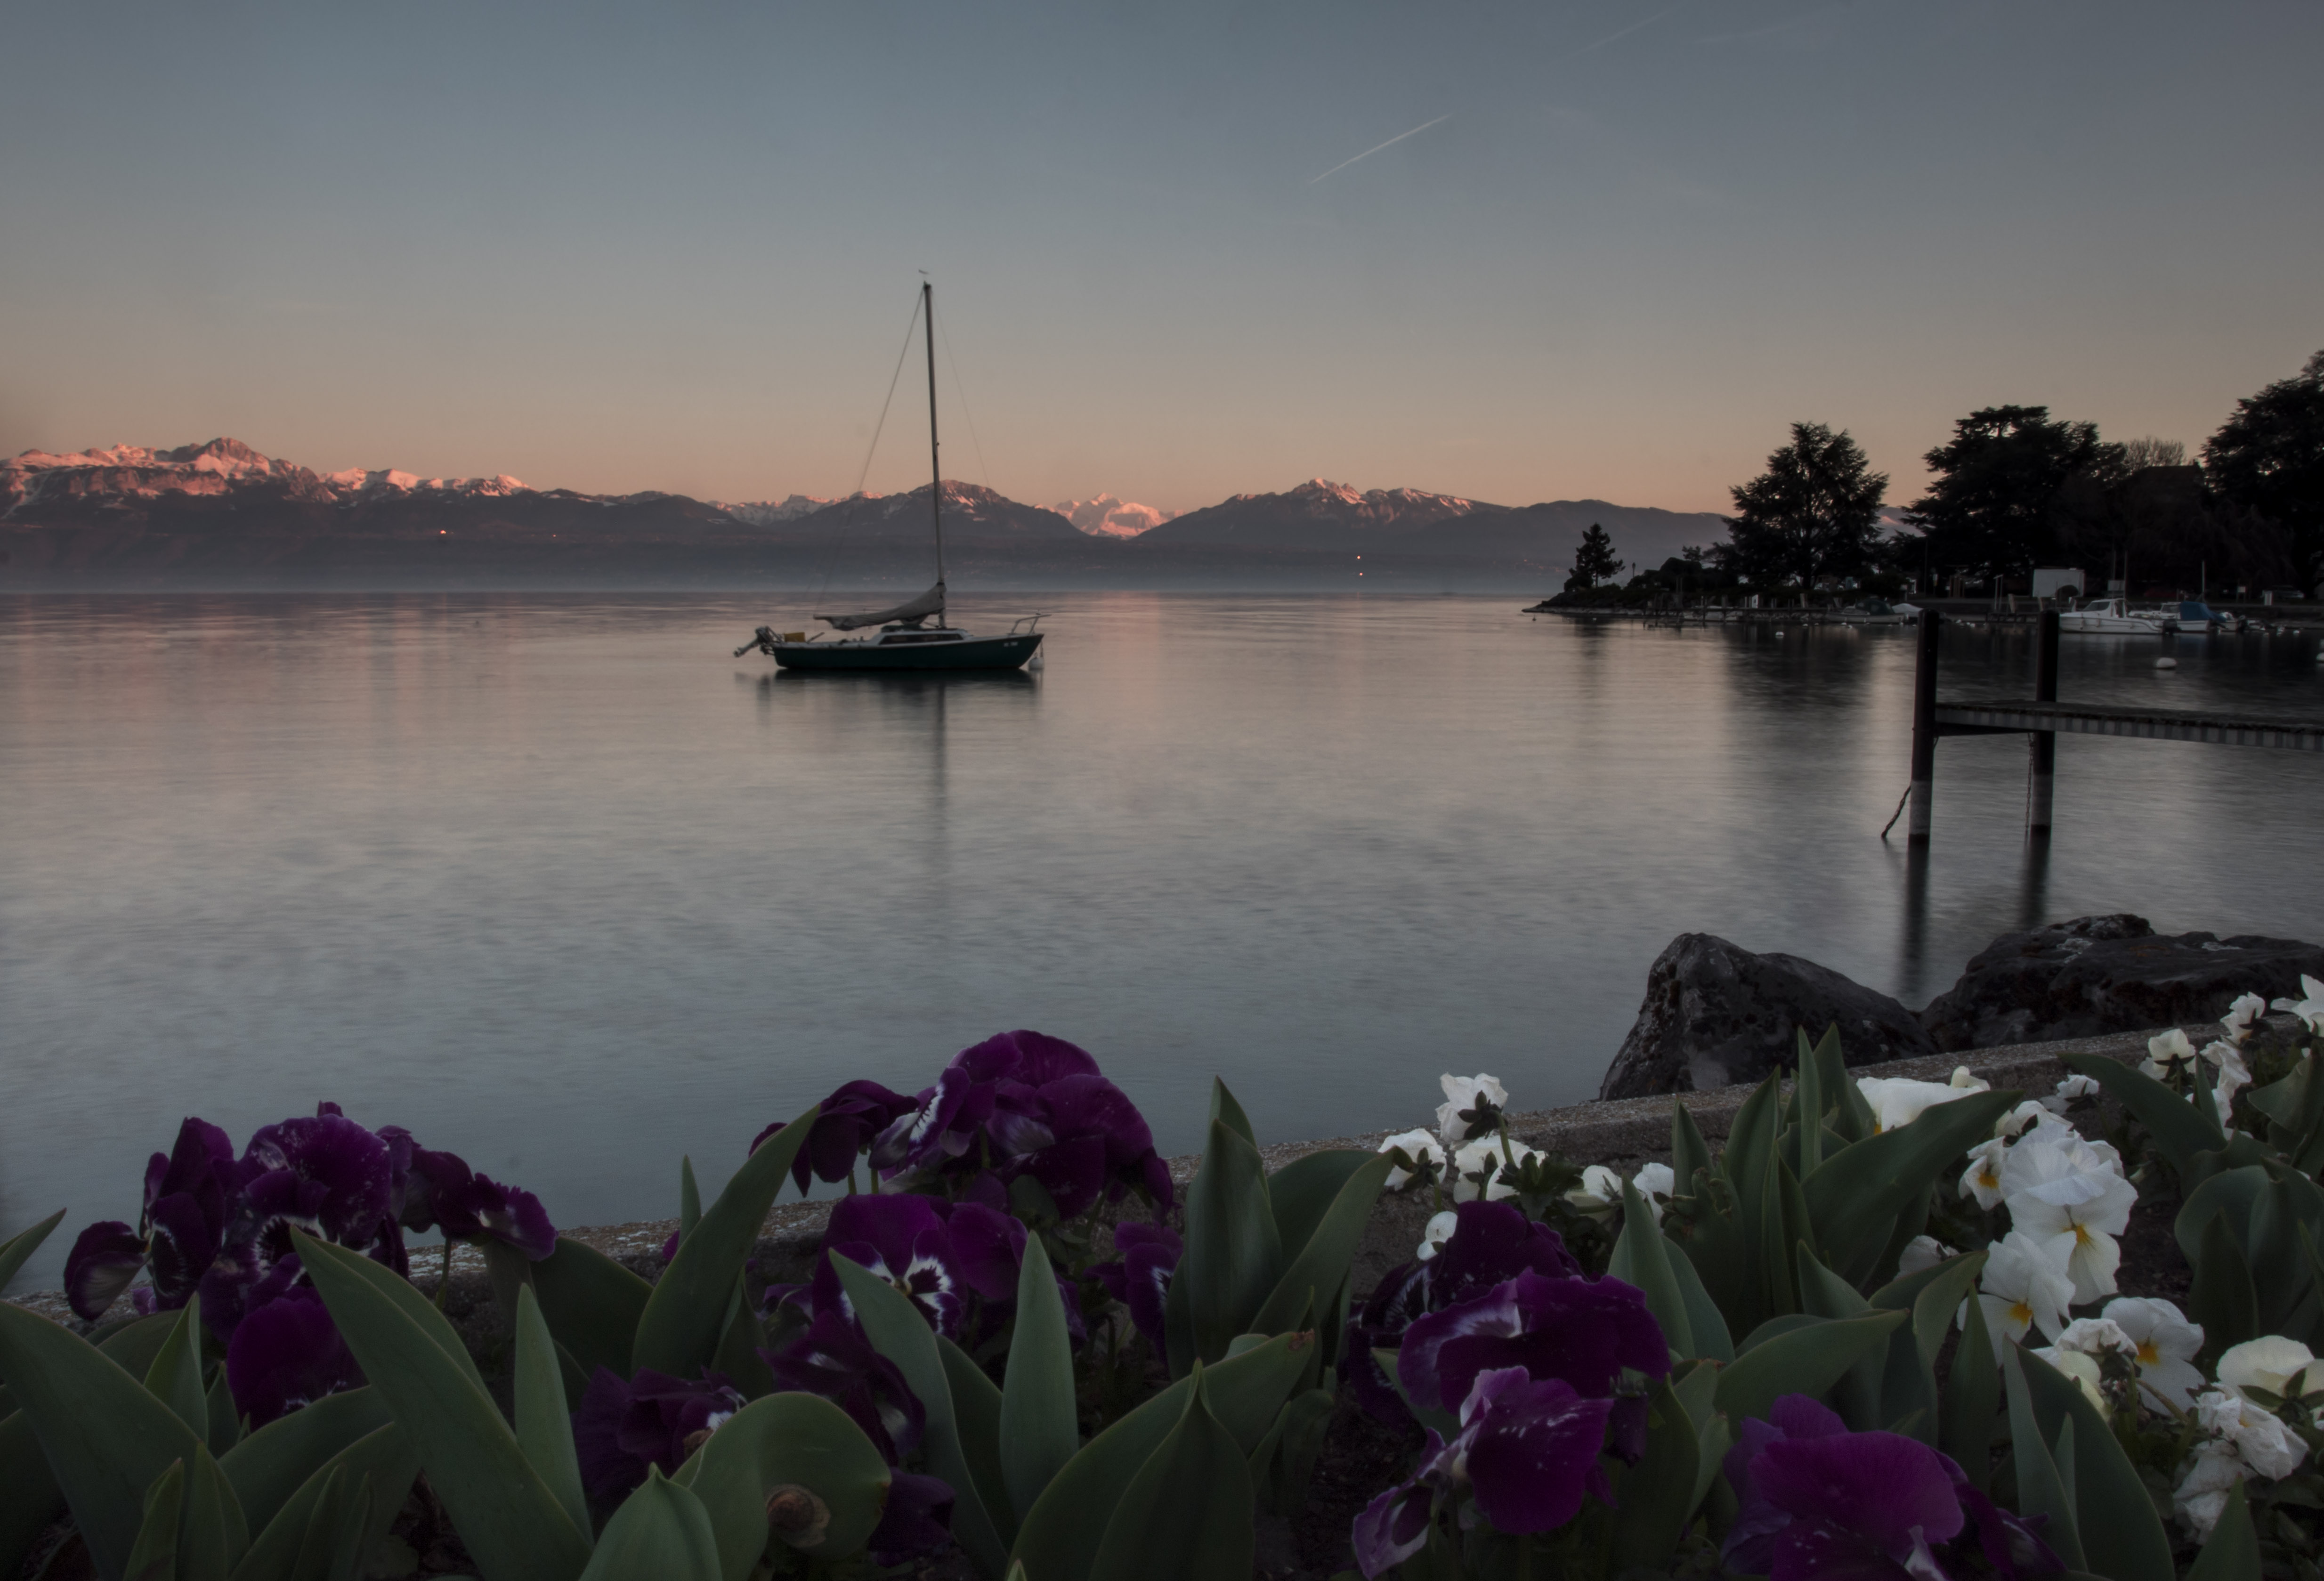 Flowers and a boat in Morges Switzerland